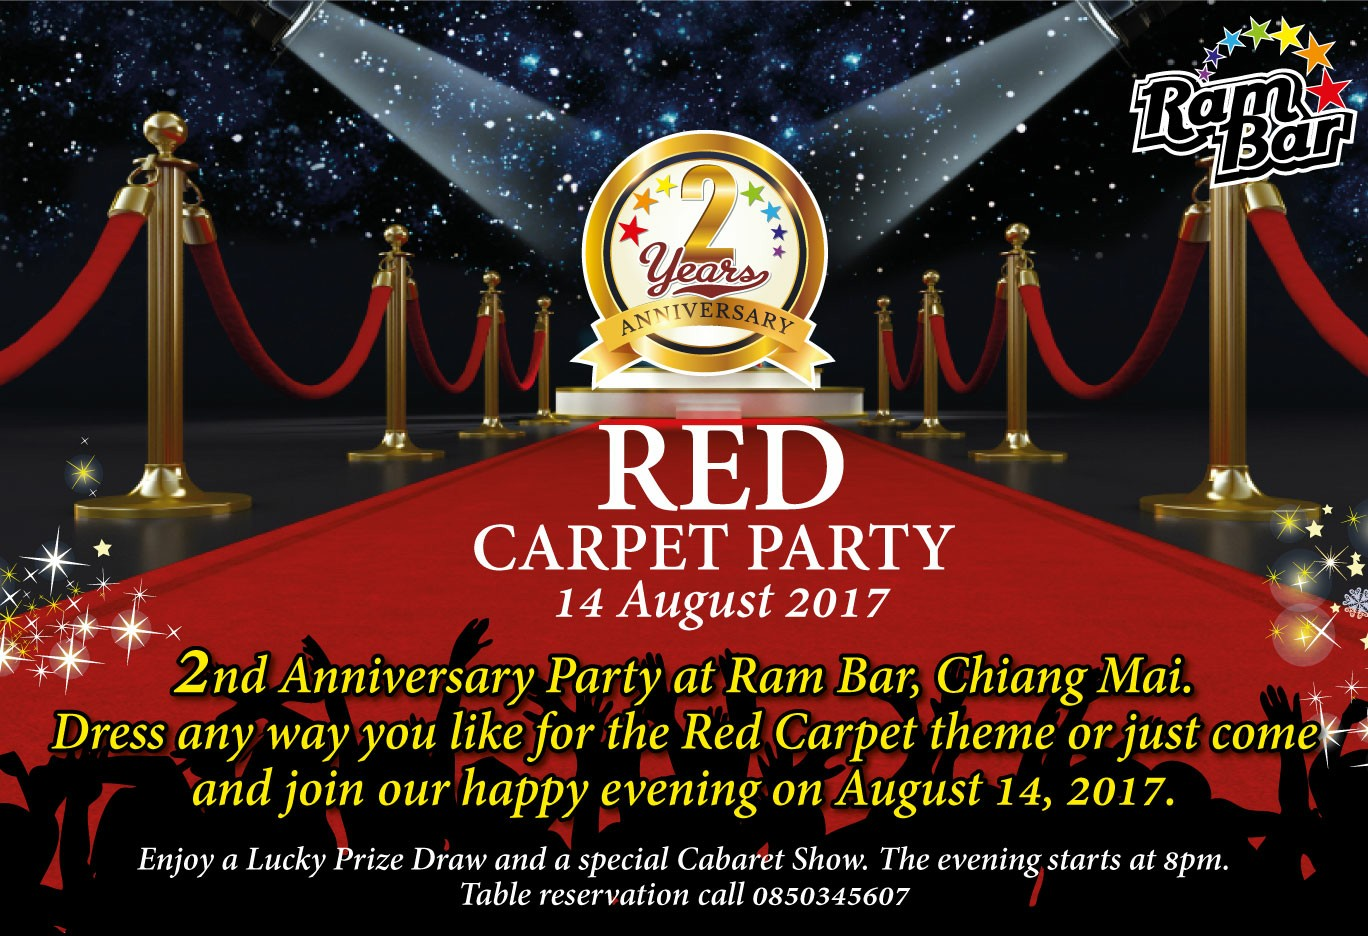 Red Carpet anniversery party at Ram Bar Chiang Mai